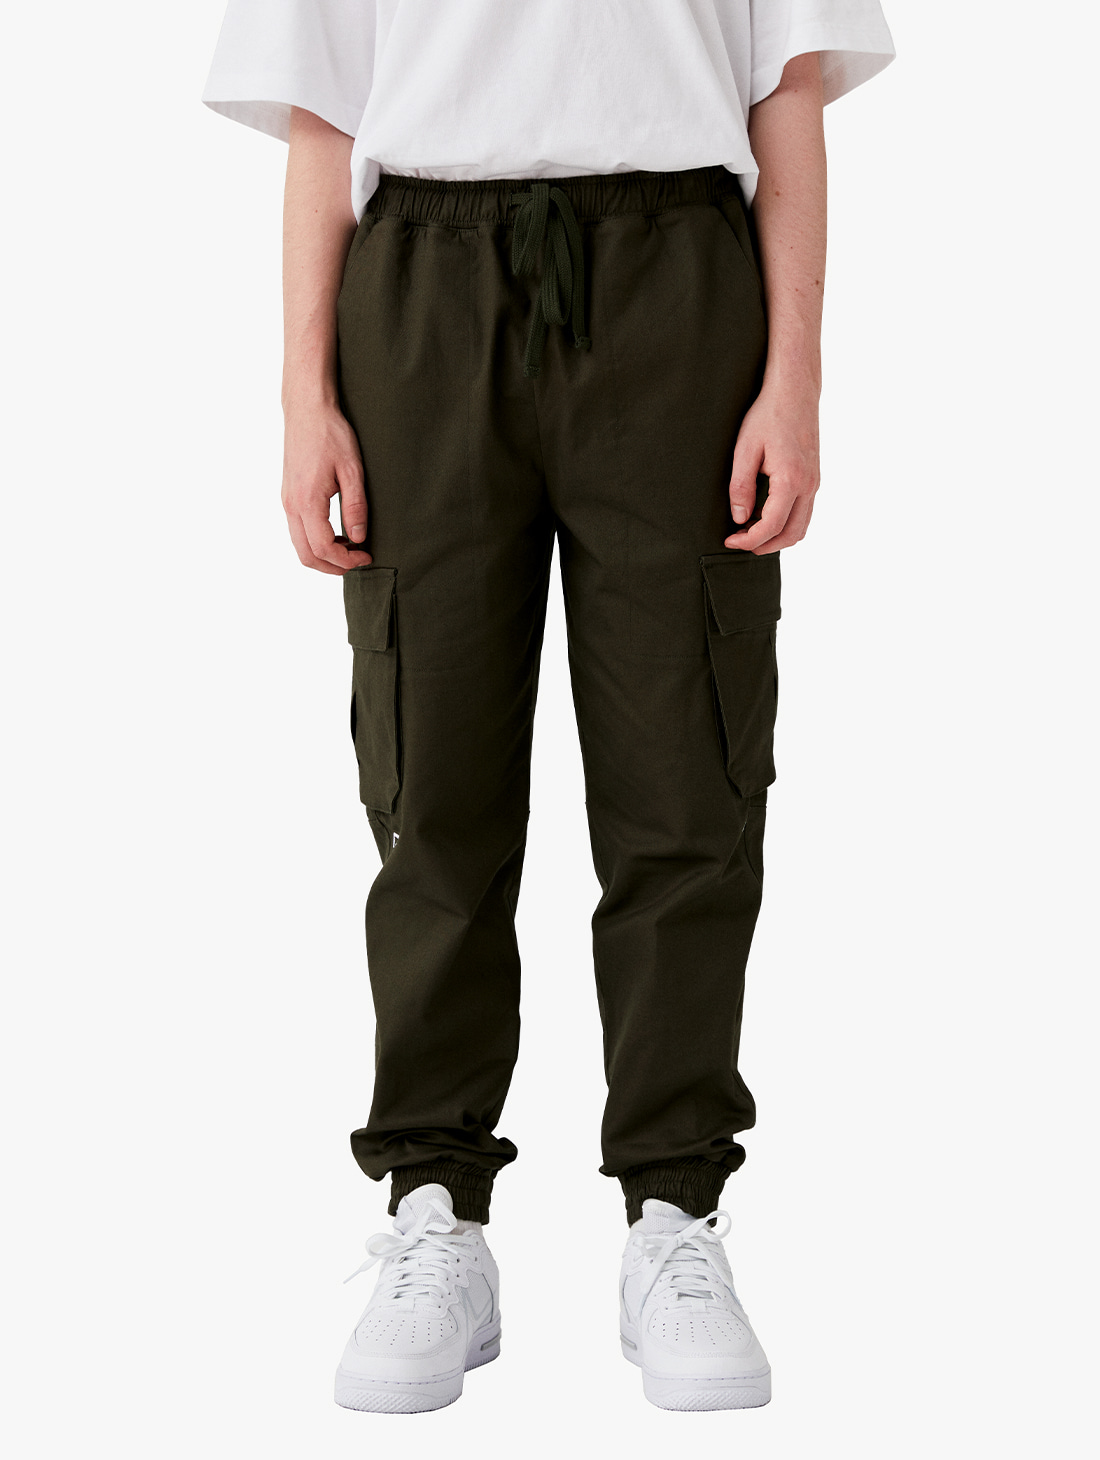 GOALSTUDIO SIGNATURE WOVEN JOGGER PANTS (2 Colors)